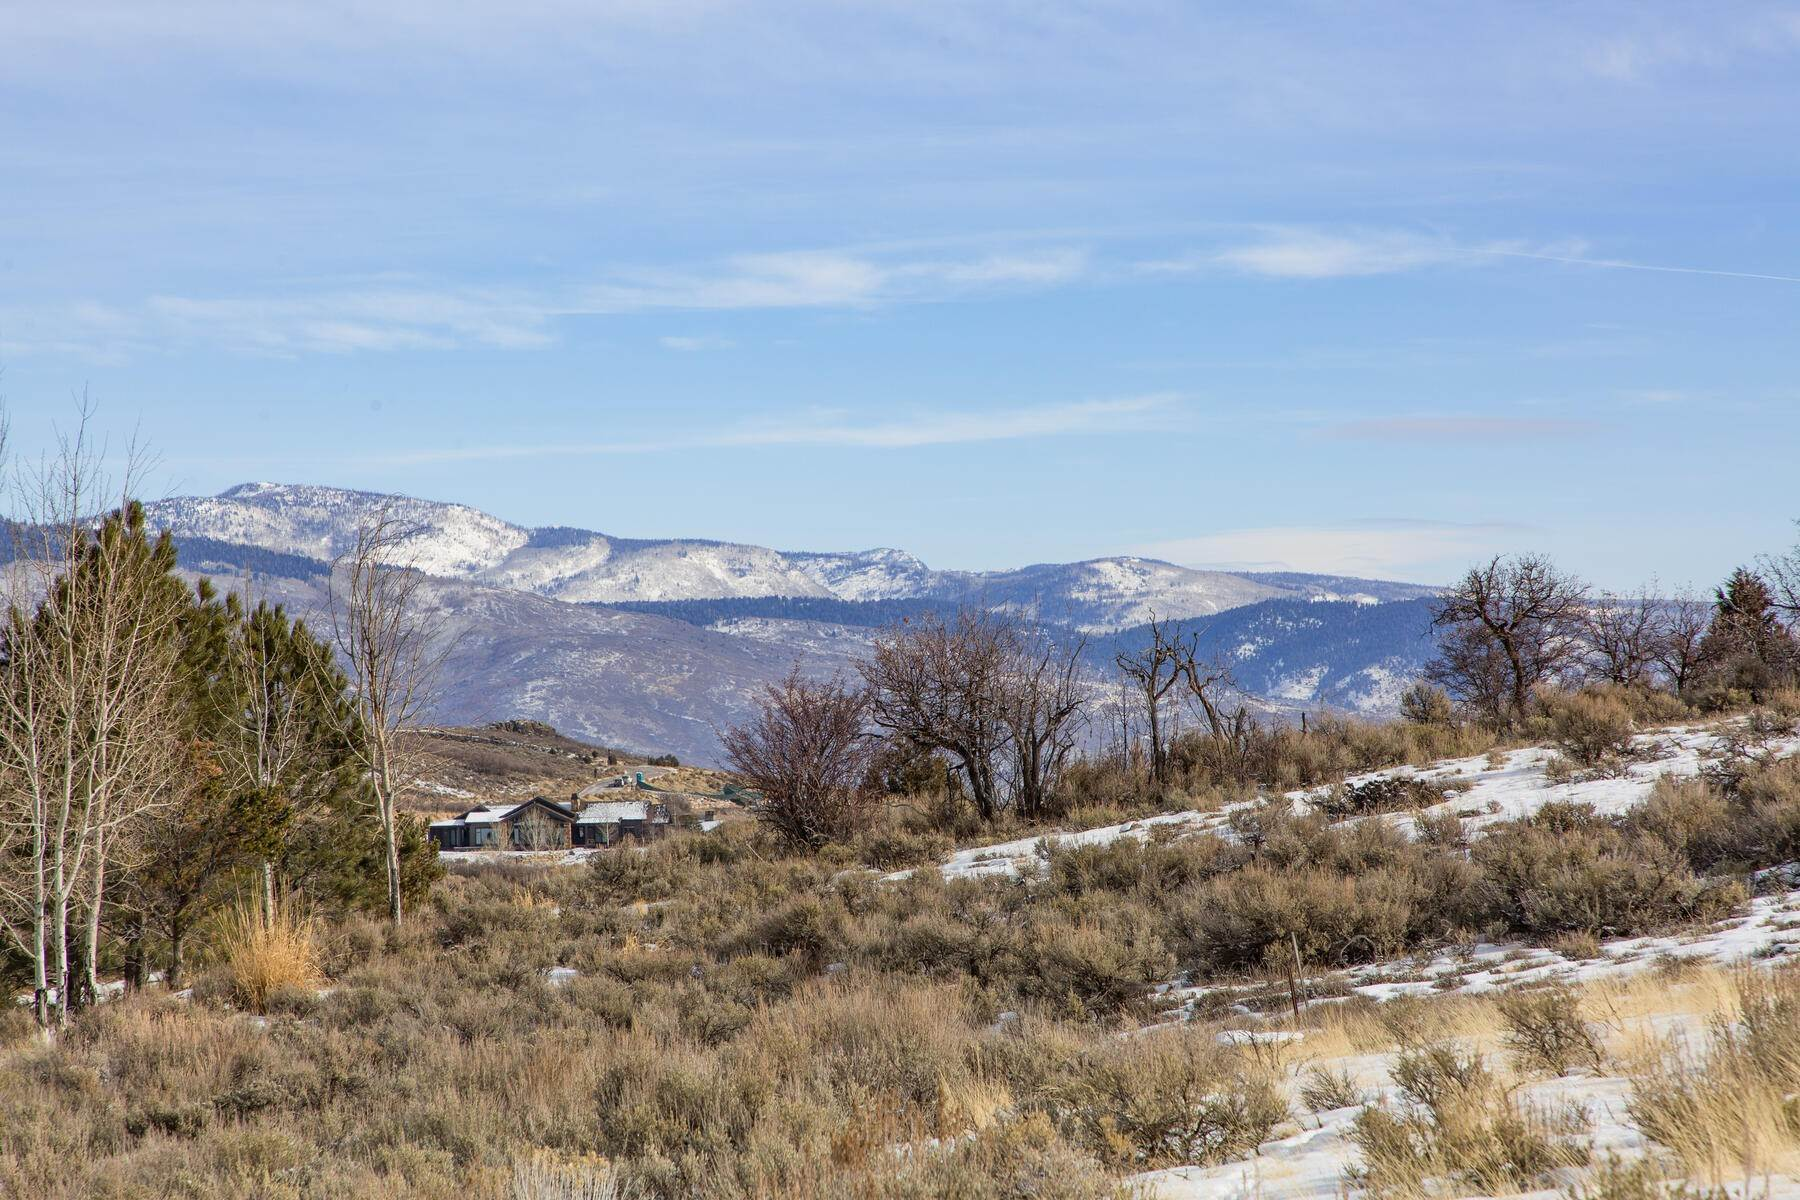 Property for Sale at Awesome Lot with Golf Views! 9367 N Uinta Drive, Lot 47 Heber City, Utah 84032 United States